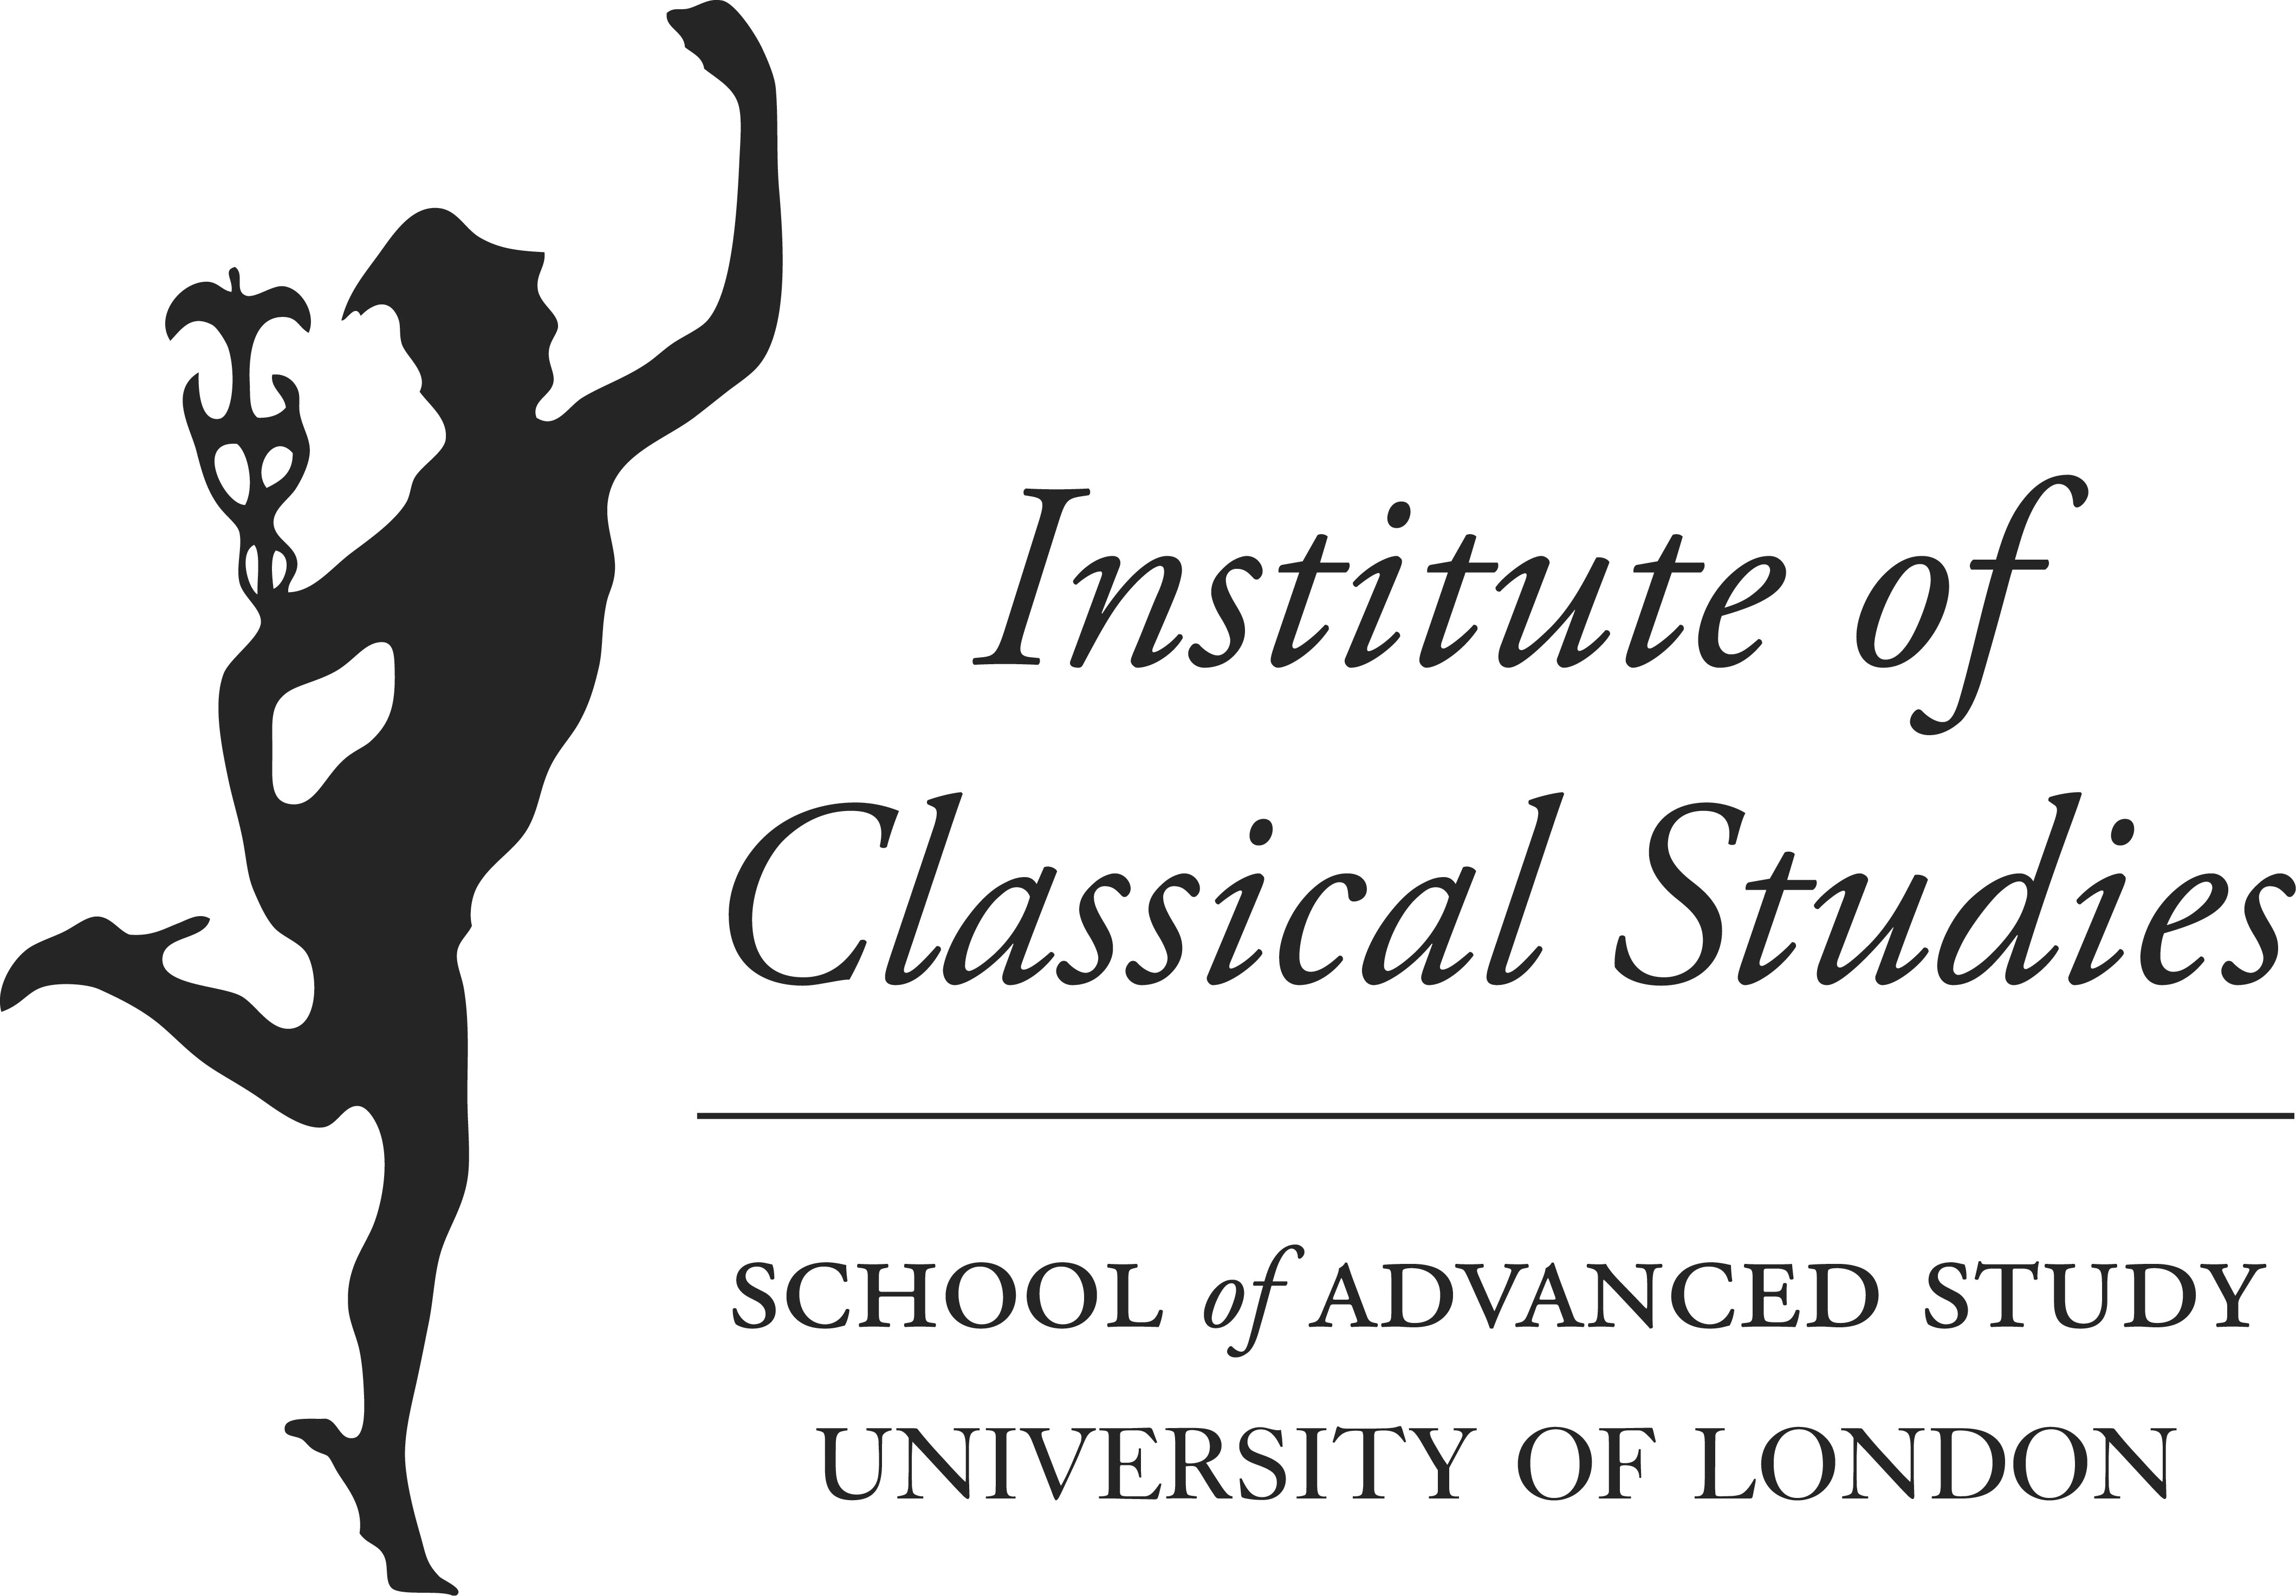 Institute of Classical Studies, School of Advanced Study, University of London